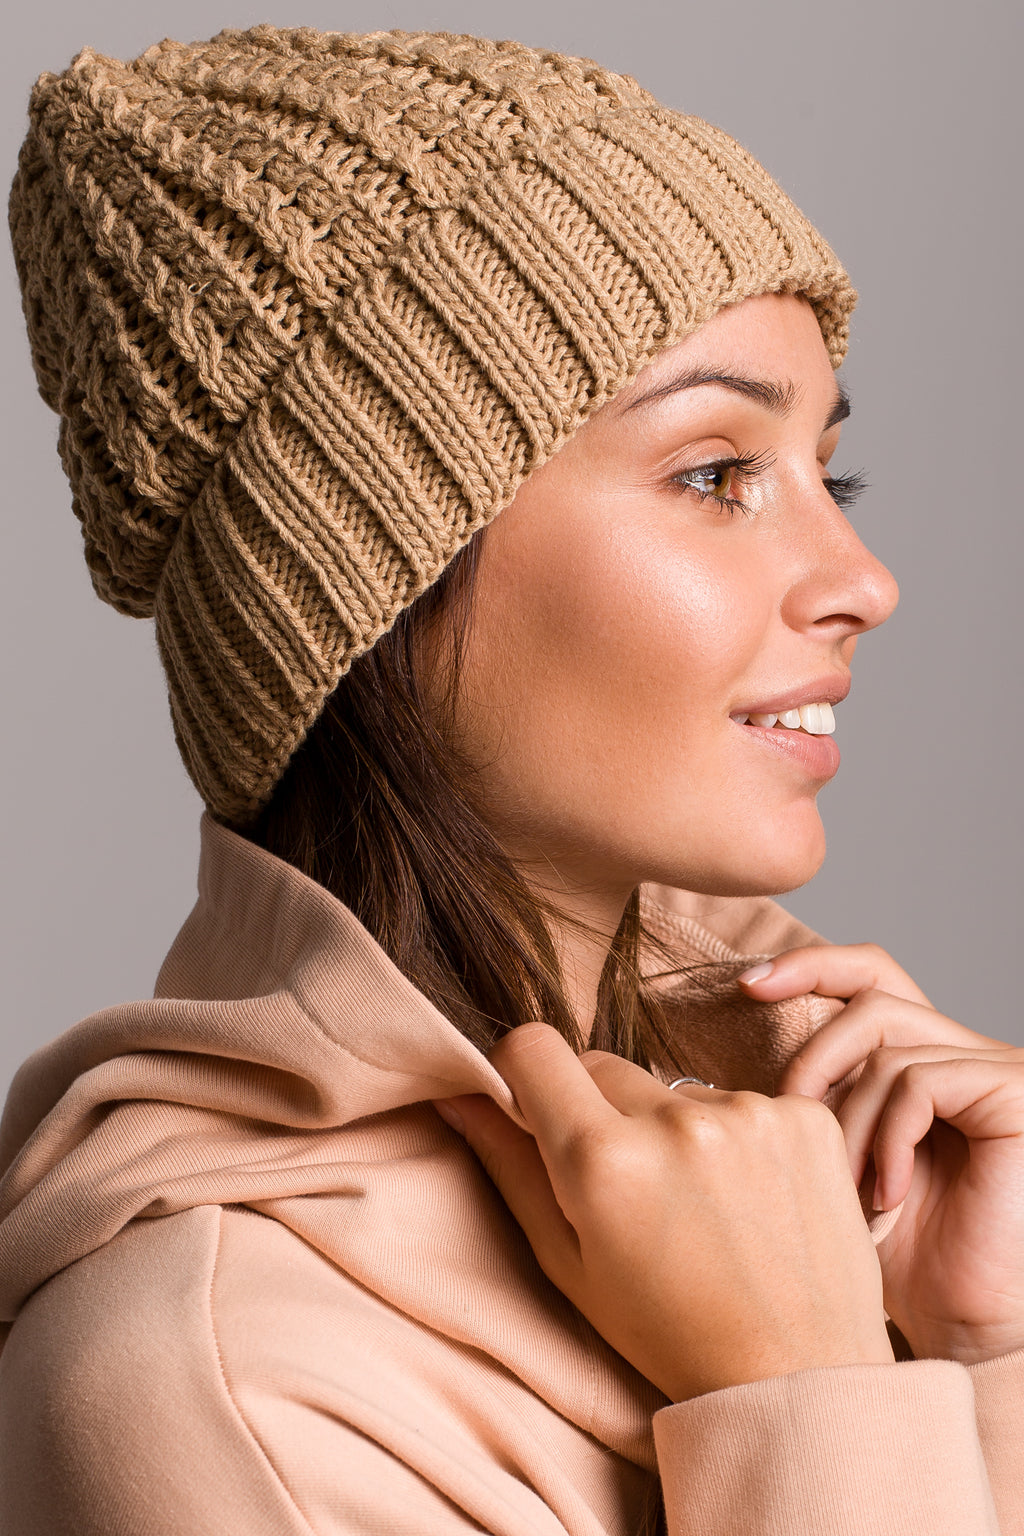 Camel Cable Knit Beanie - So Chic Boutique